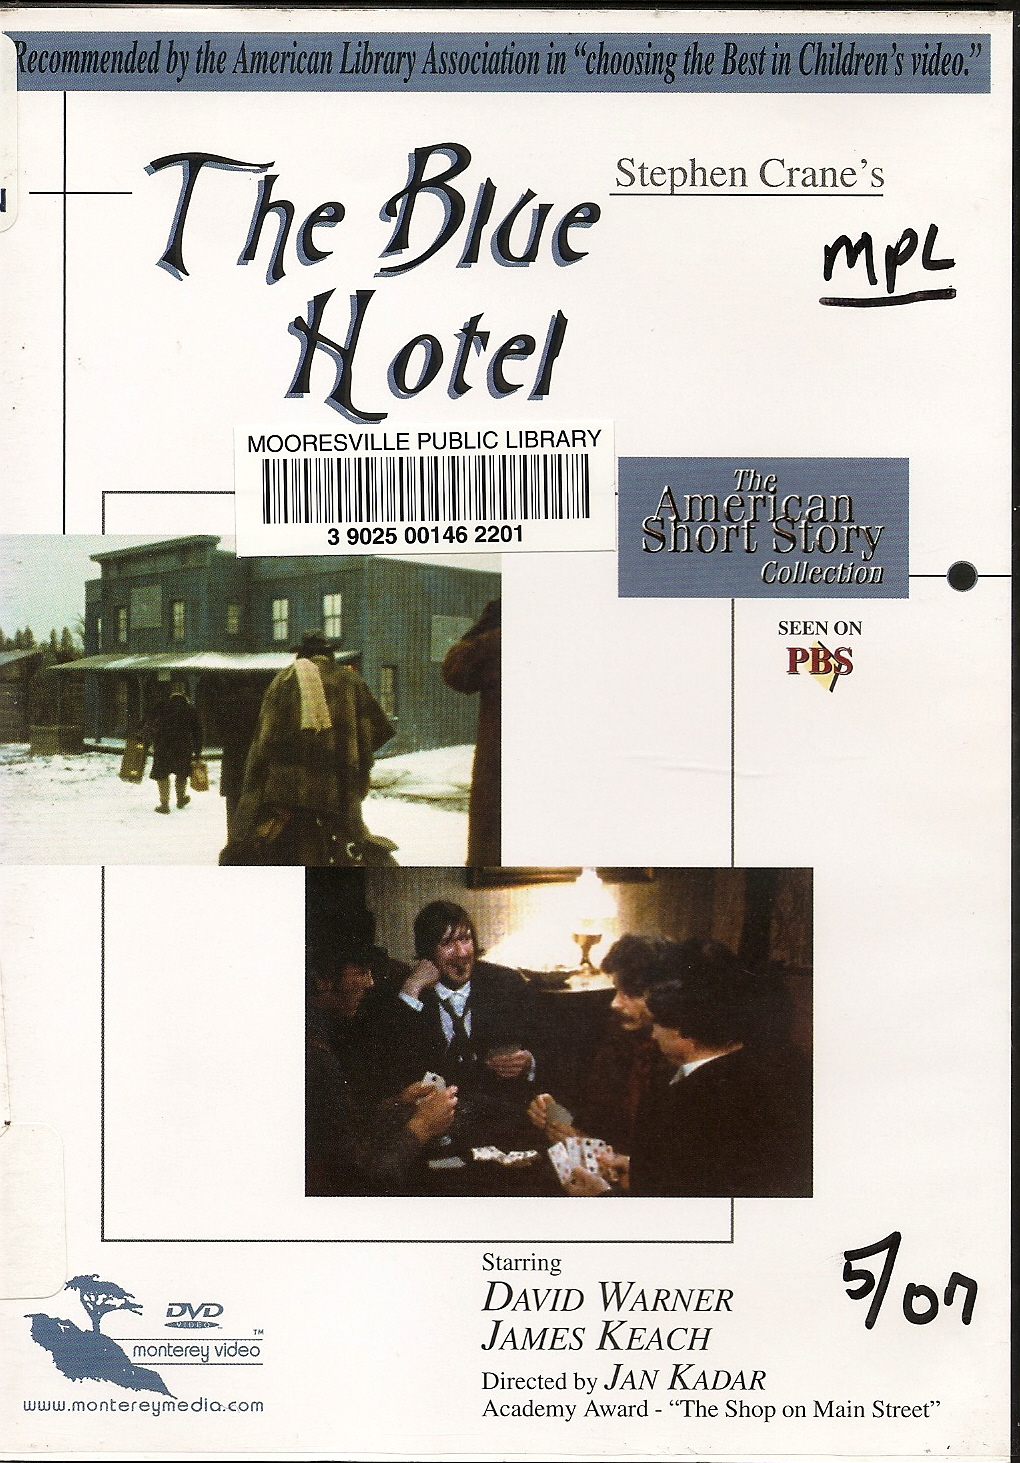 an analysis of the blue hotel by stephen crane Maggie: a girl of the streets and other stories summary and analysis of the blue hotel the blue hotel the monster stephen crane and literary naturalism.